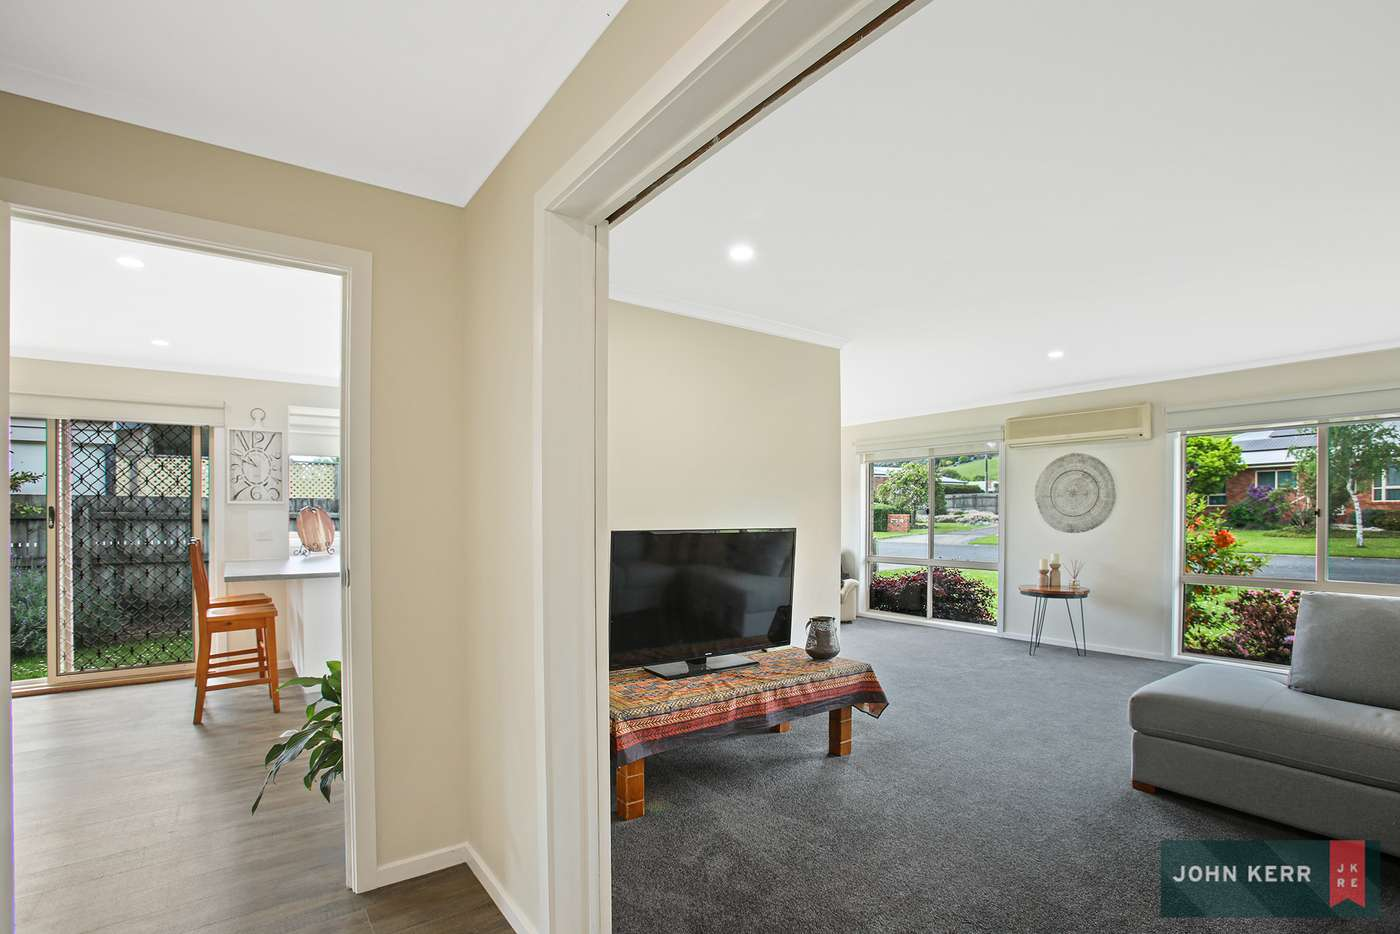 Fifth view of Homely house listing, 15 Centenary Drive, Trafalgar VIC 3824